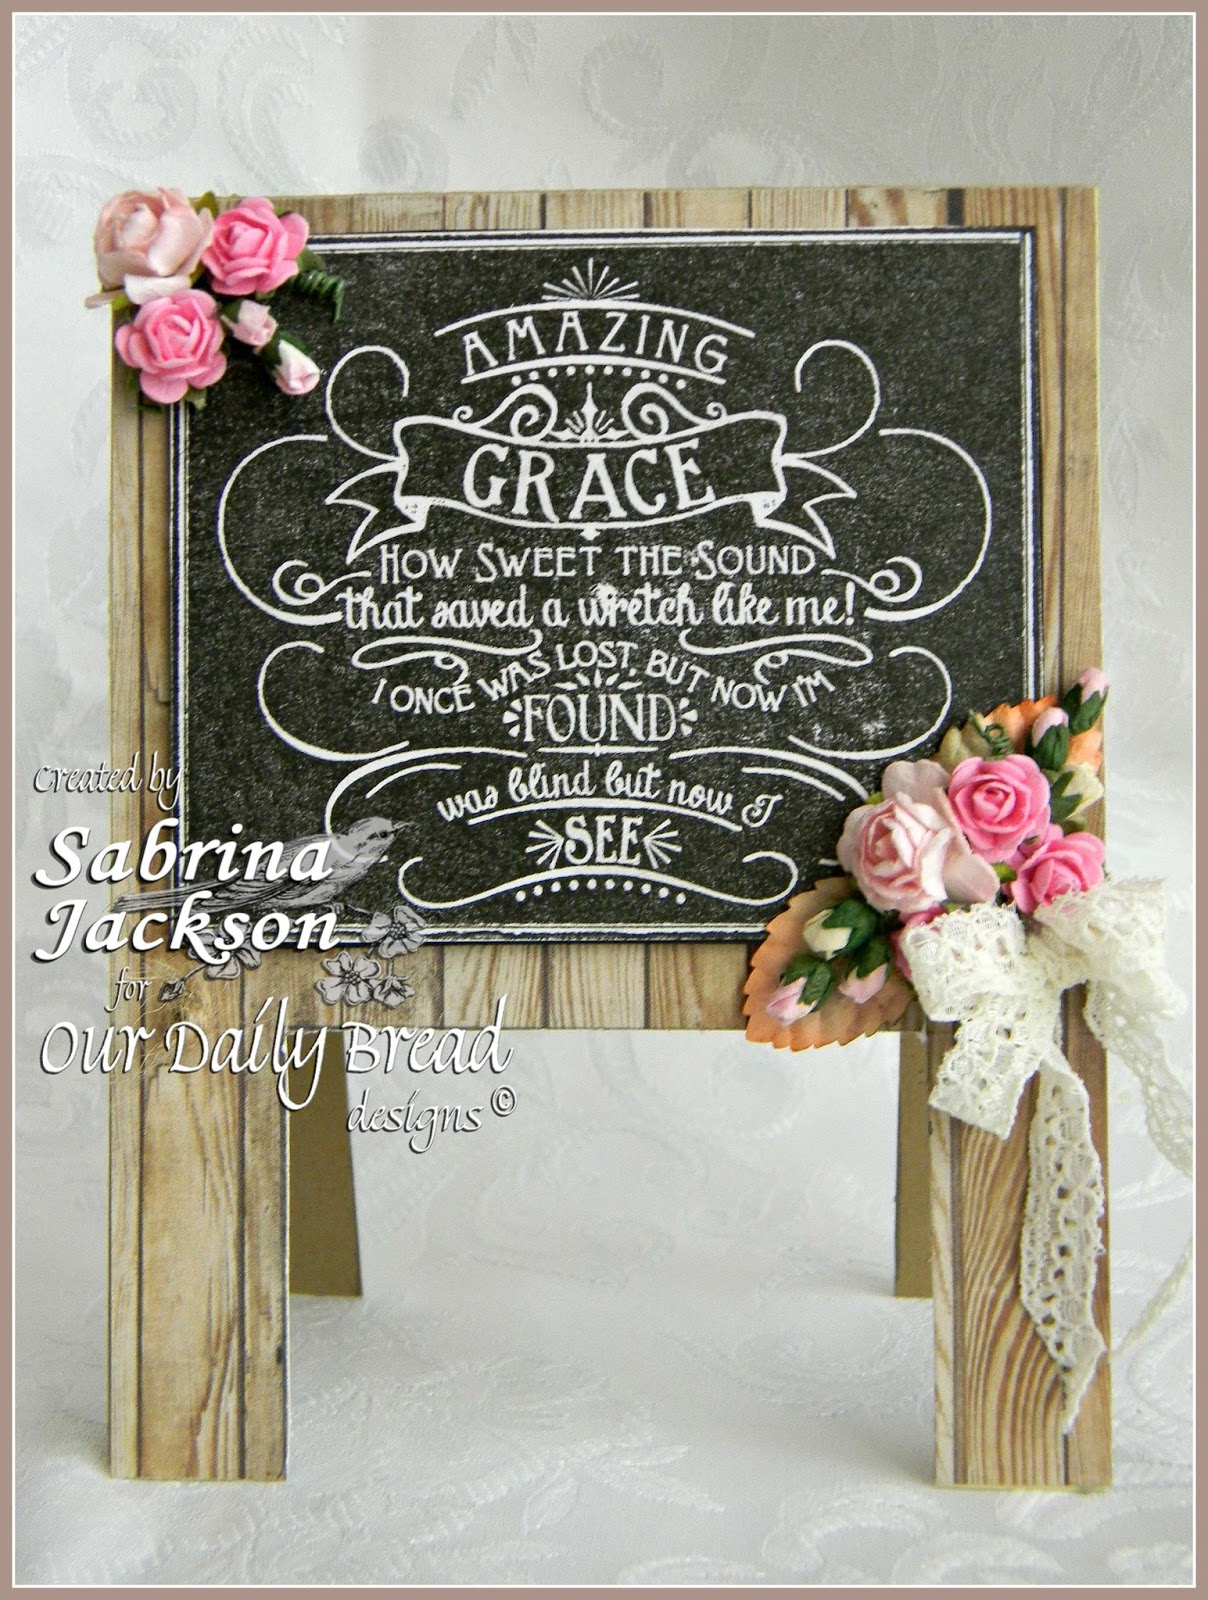 Stamps - Our Daily Bread Designs Chalkboard Amazing Grace